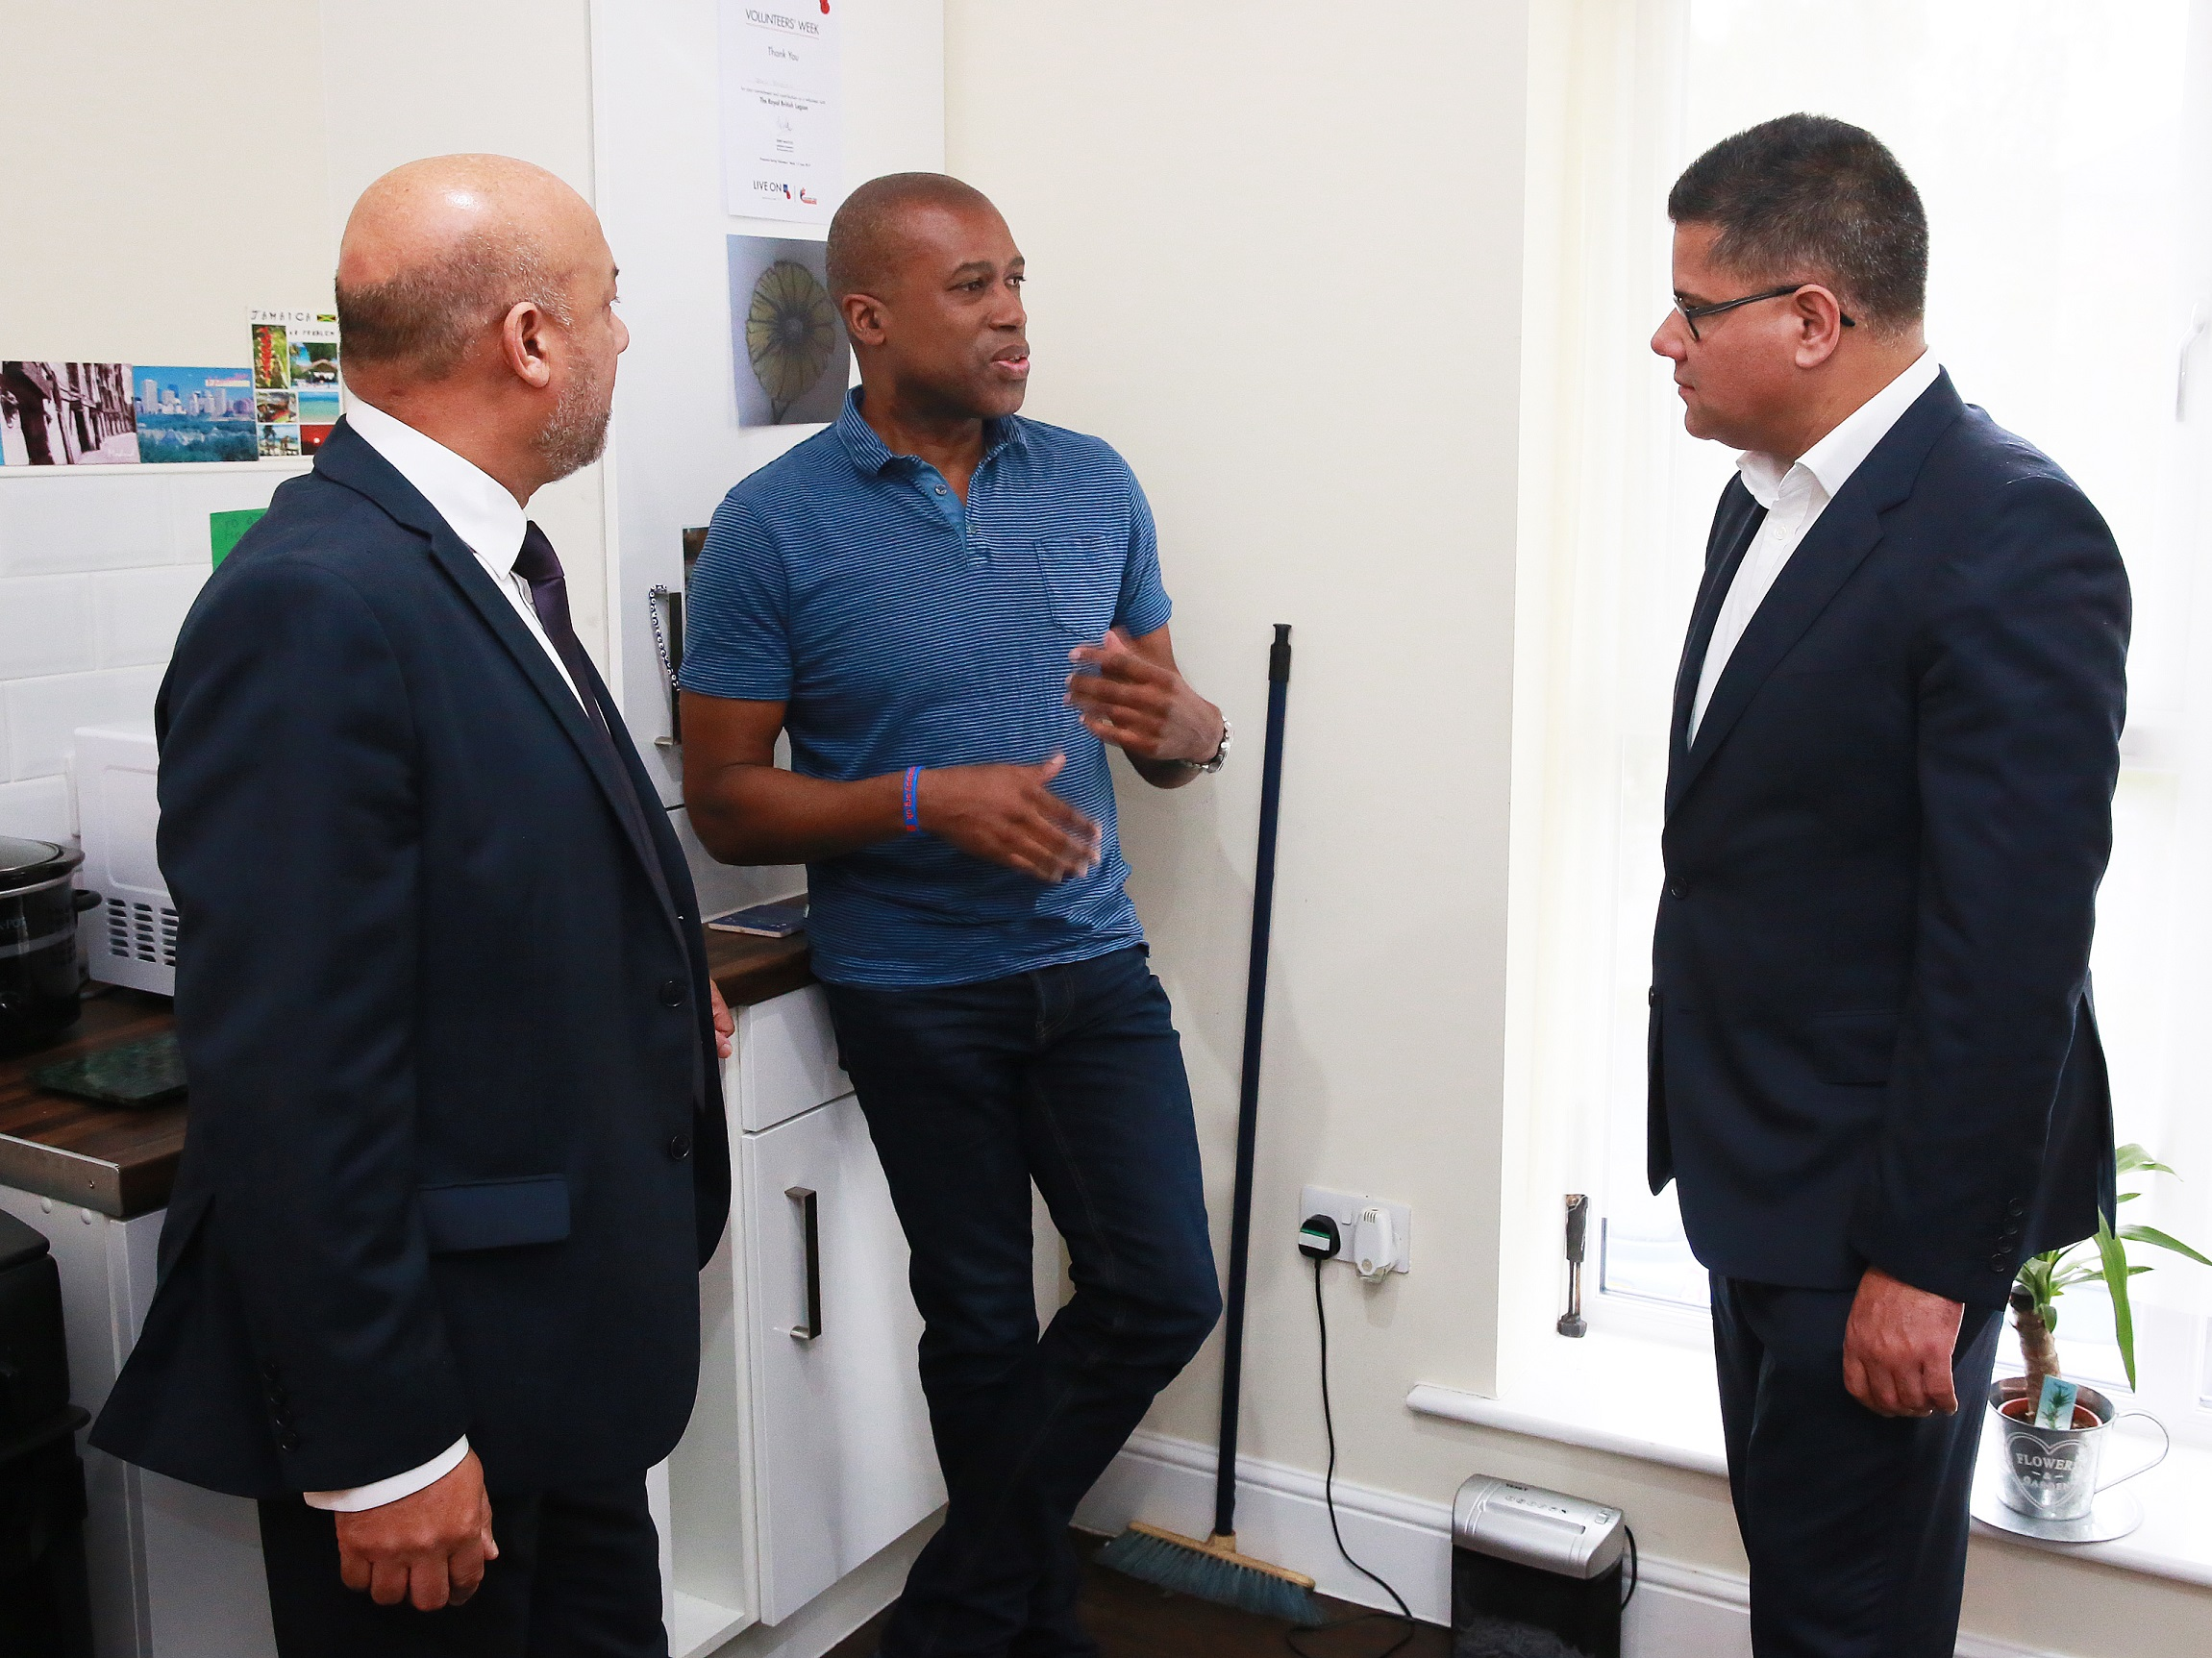 Holborn Court resident Ian Bailey (centre) welcomes Housing and Planning Minister Alok Sharma (right) and Unity chief executive Ali Akbor (left) into his new home at Holborn Court in Little London, Leeds.